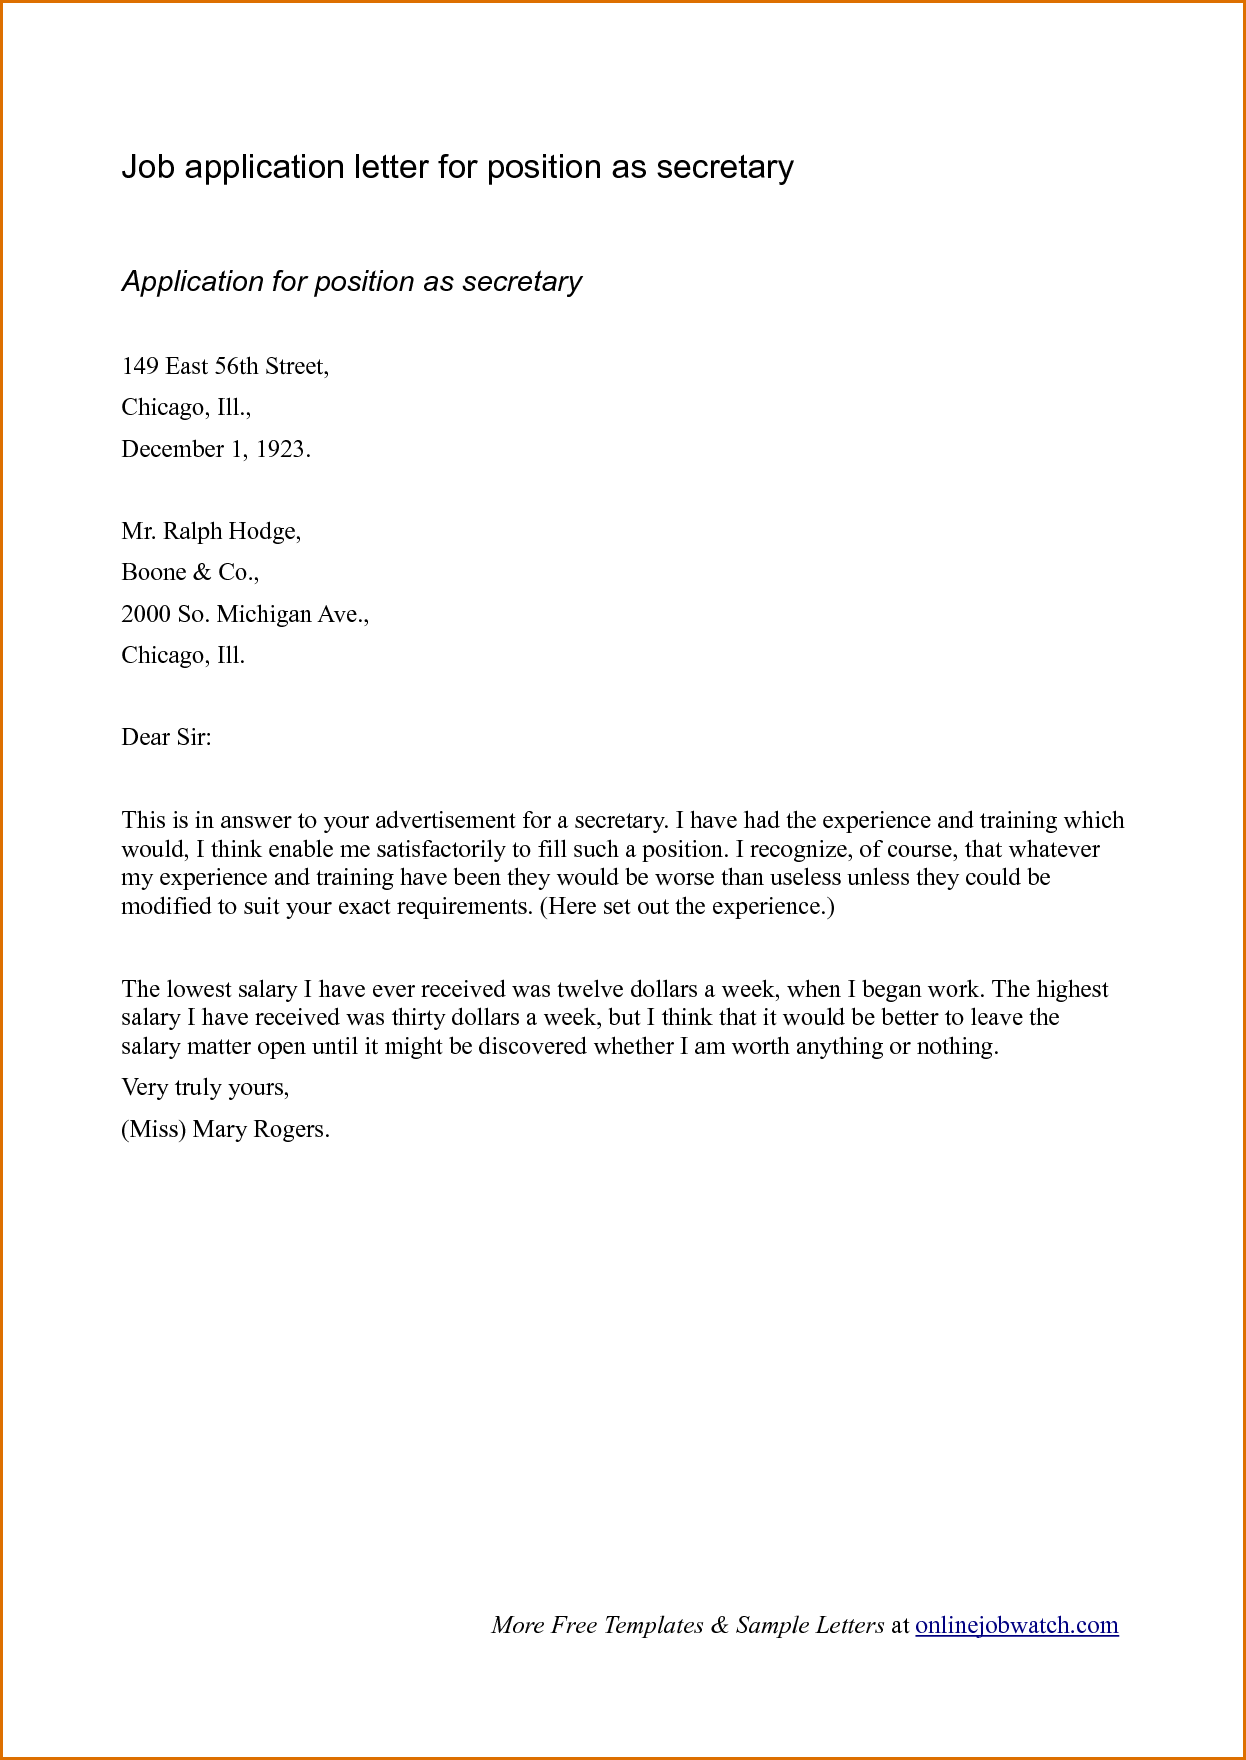 Sample cover letter format for job application for Who to write a cover letter for job application